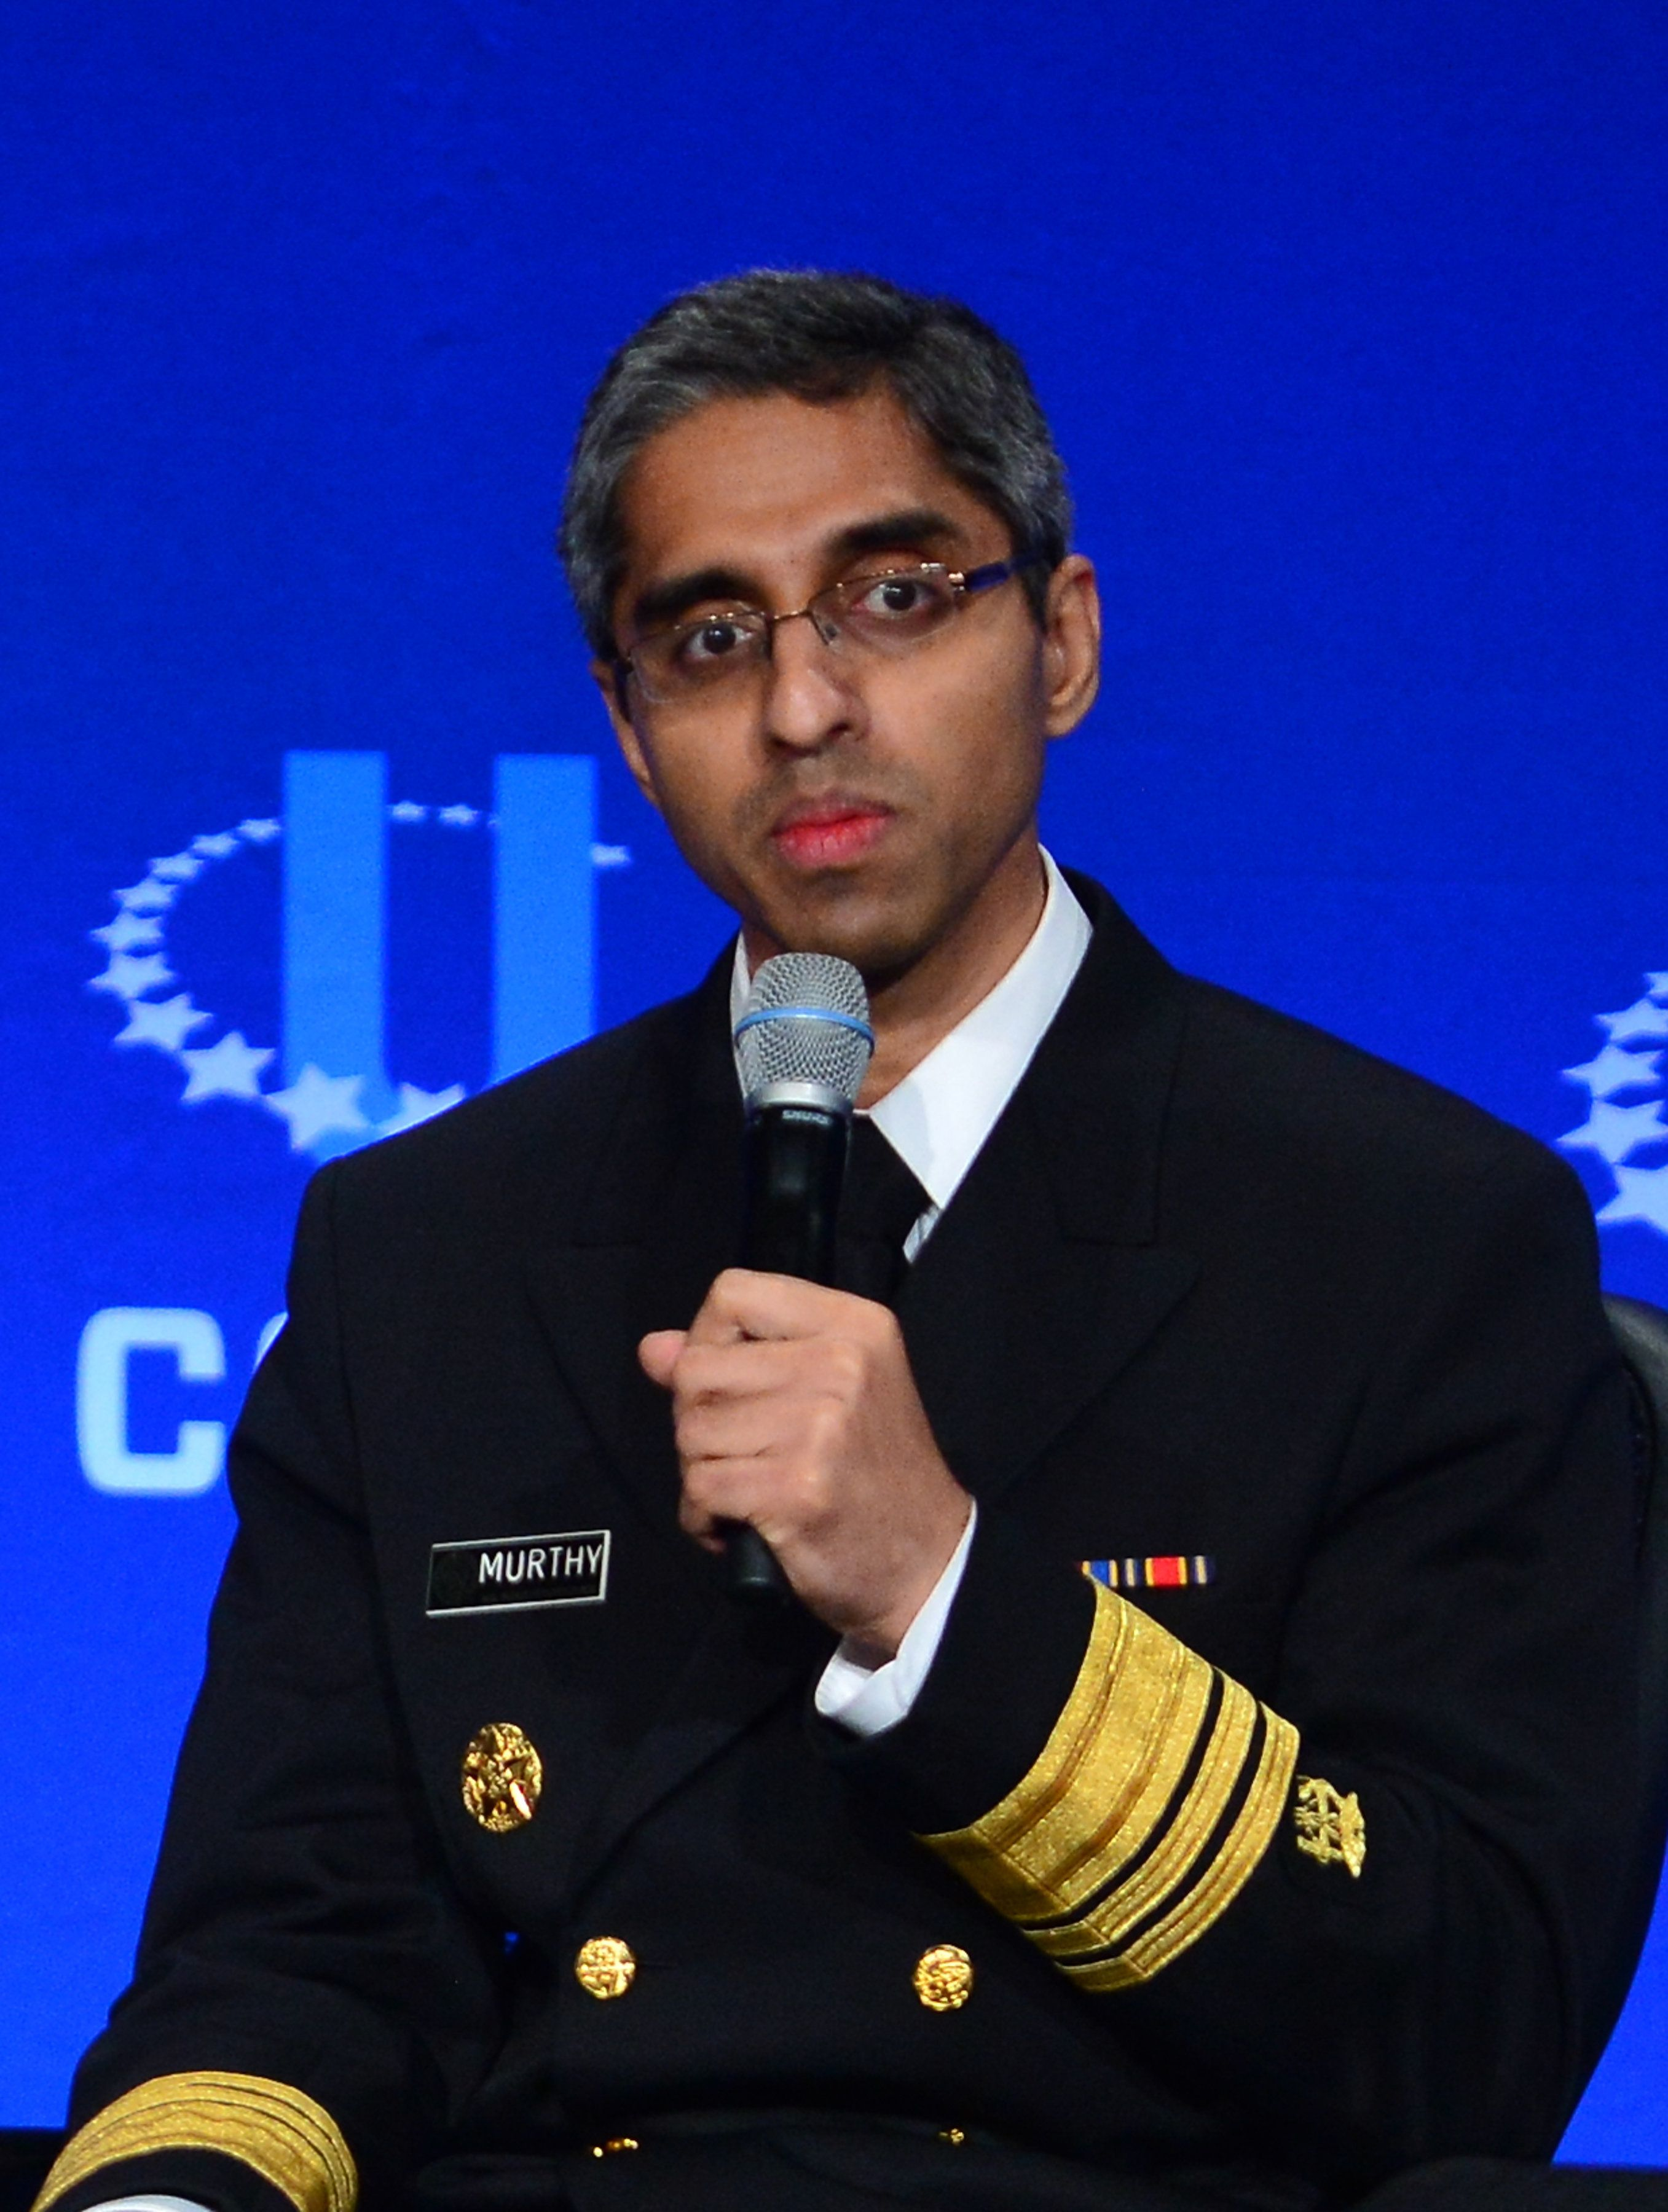 MIAMI, FL - MARCH 06: United States Surgeon General Vivek Murthy attends Clinton Global Initiative University - Fast Forward: Accelerating Opportunity for All at University of Miami on March 6, 2015 in Miami, Florida. (Photo by Johnny Louis/WireImage)